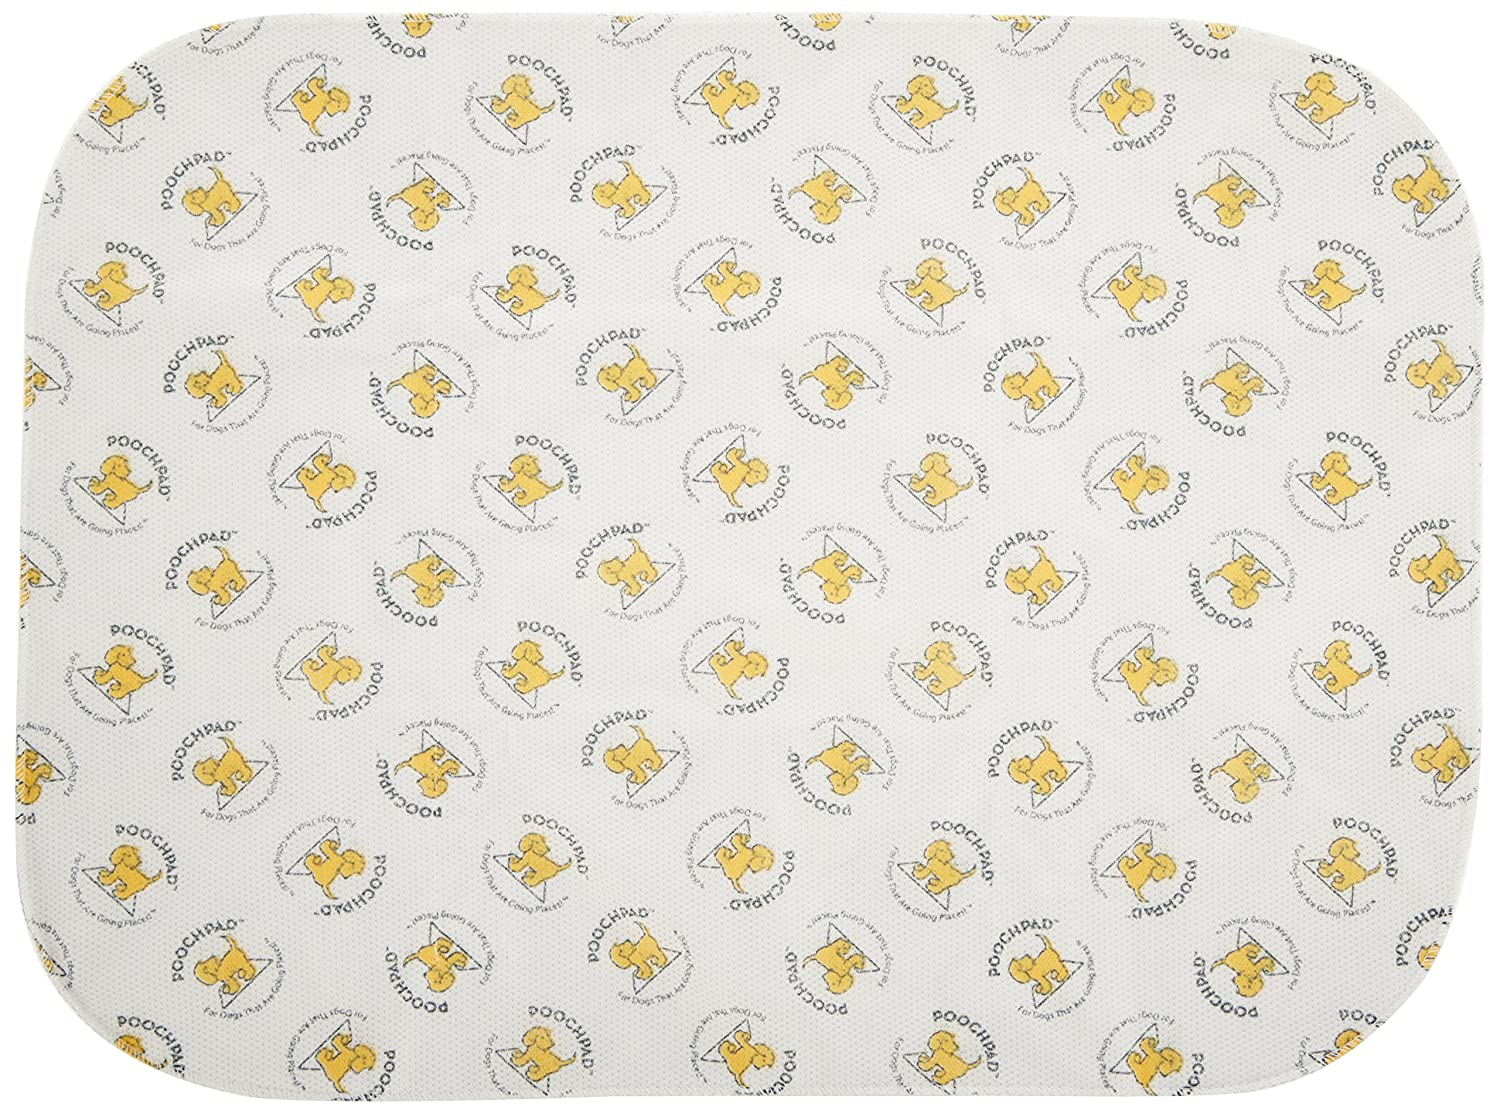 PoochPads PP20273 White PoochPad (3 Pack), Medium 20  x 27